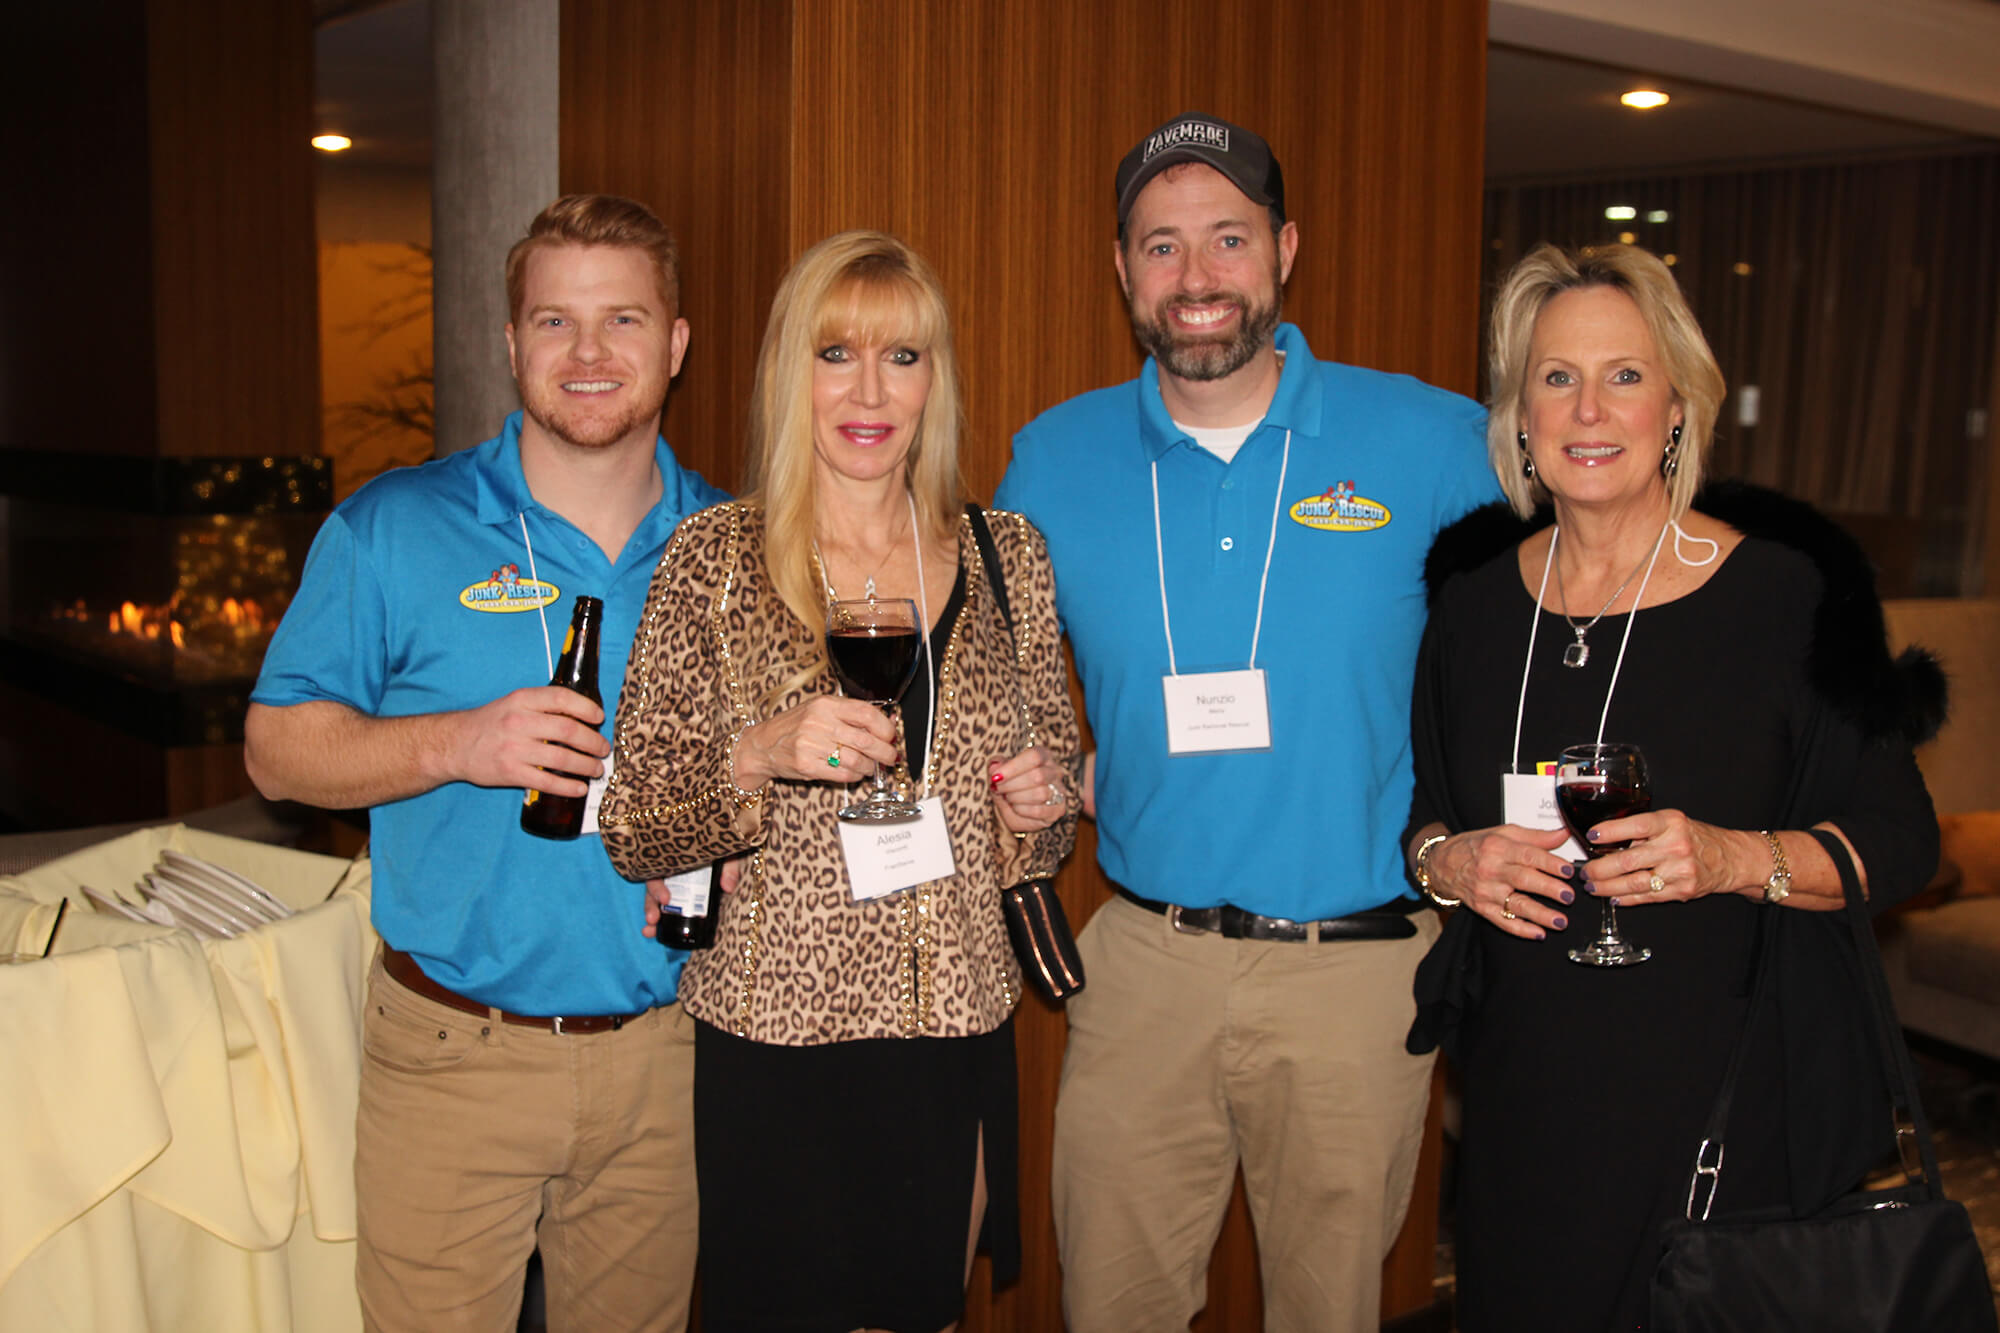 Junk Rescue employees smile for the camera at SMB Franchise Advisors' annual Christmas party.